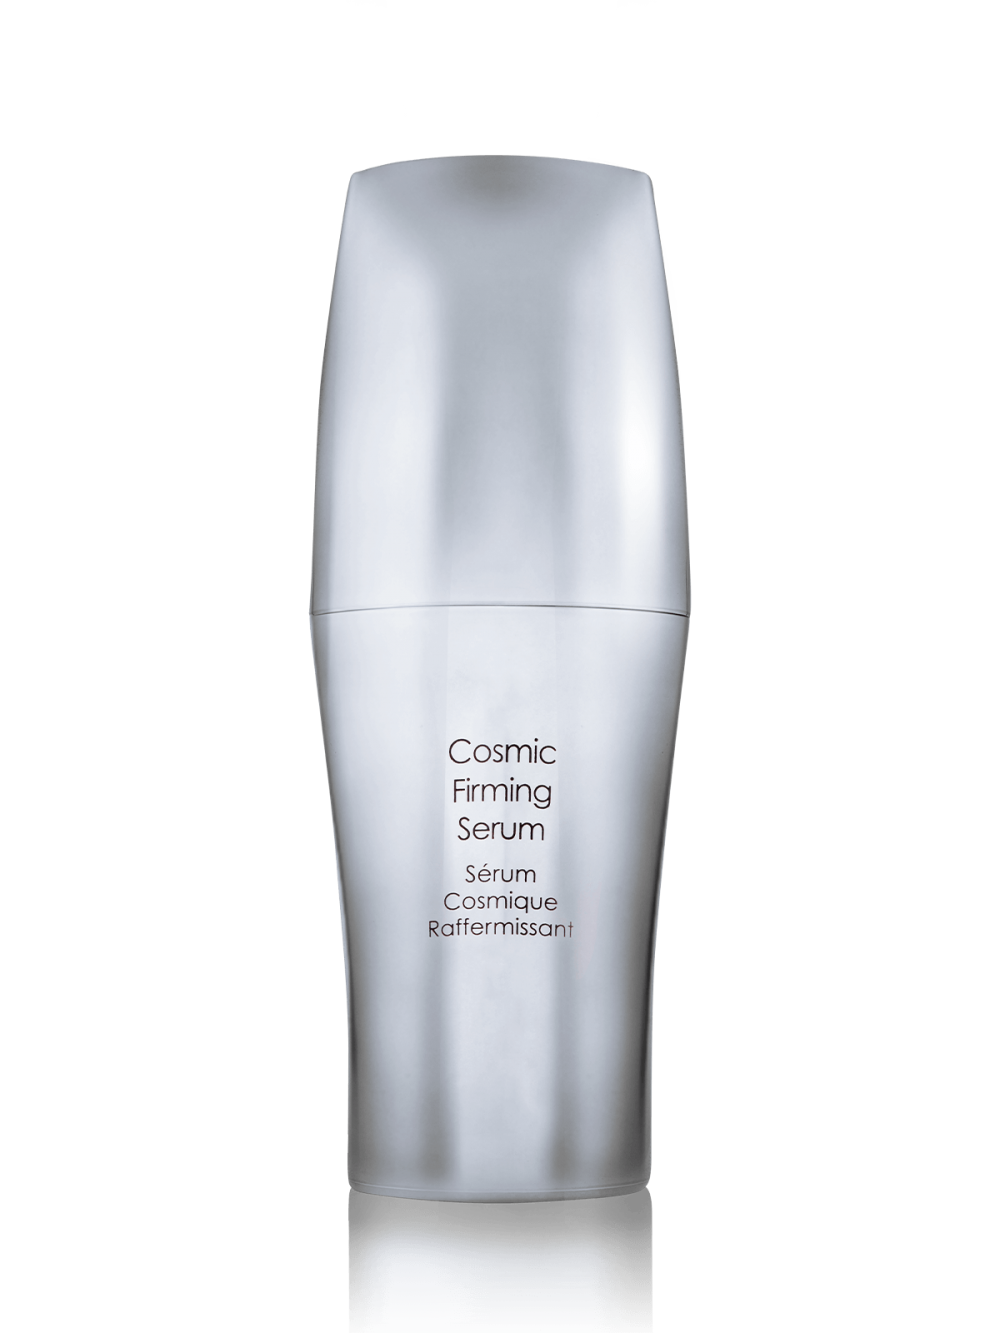 Cosmic Firming Serum back